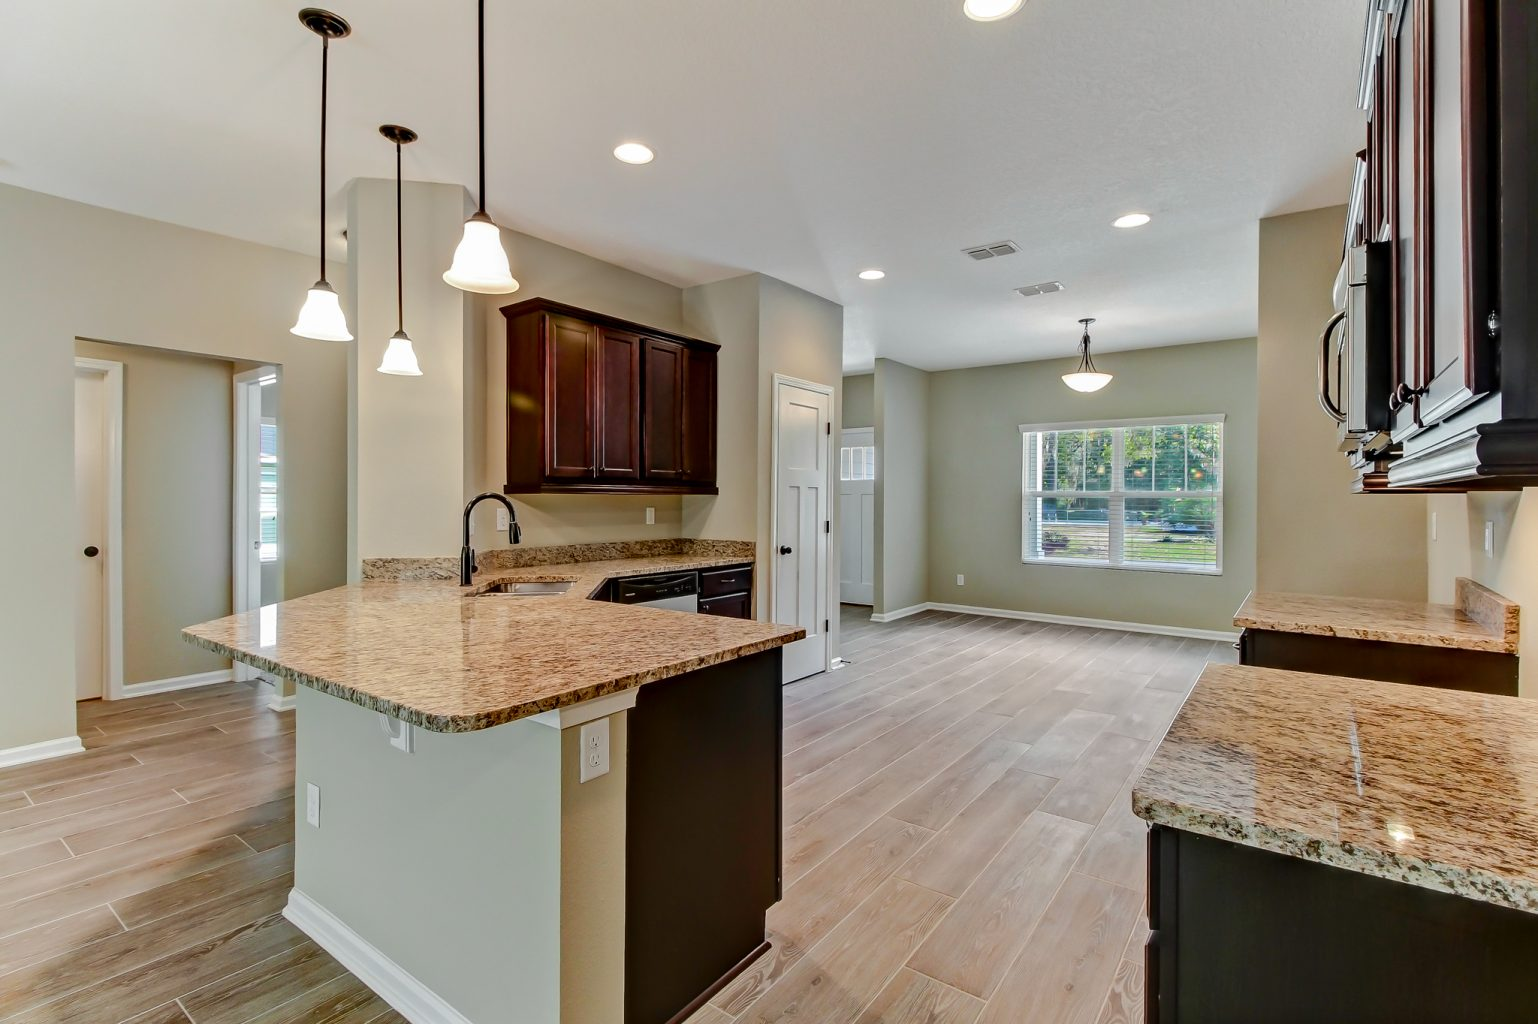 View of the countertops